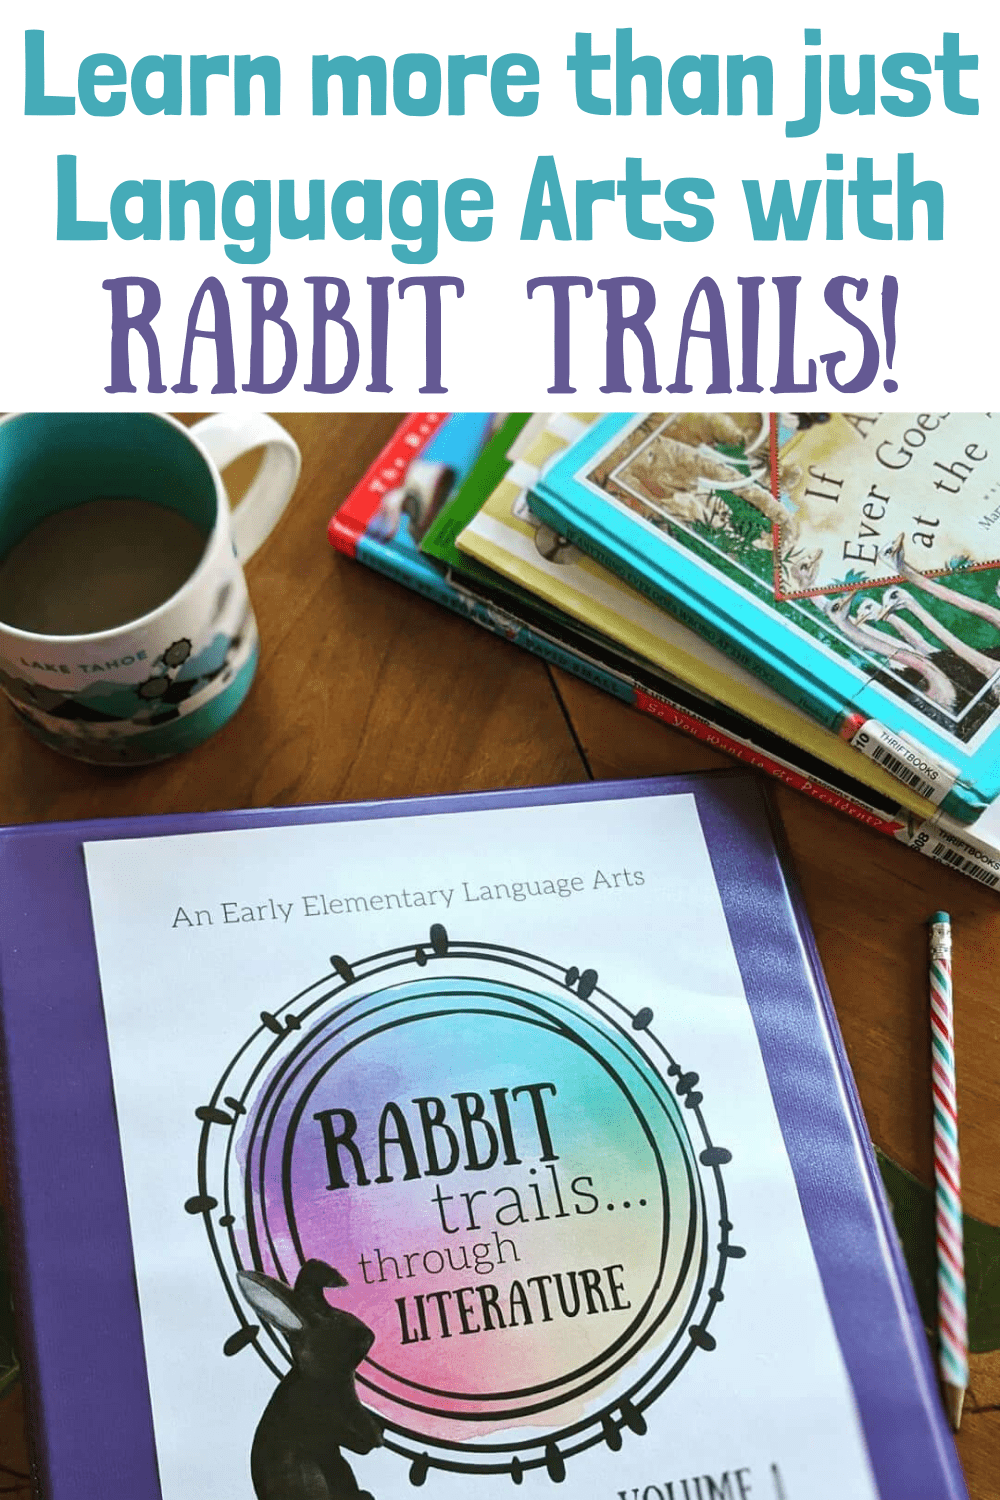 Learn more than just language arts with Rabbit Trails through Literature! #rabbittrails #languageartscurriculum #homeschoolcurriculum